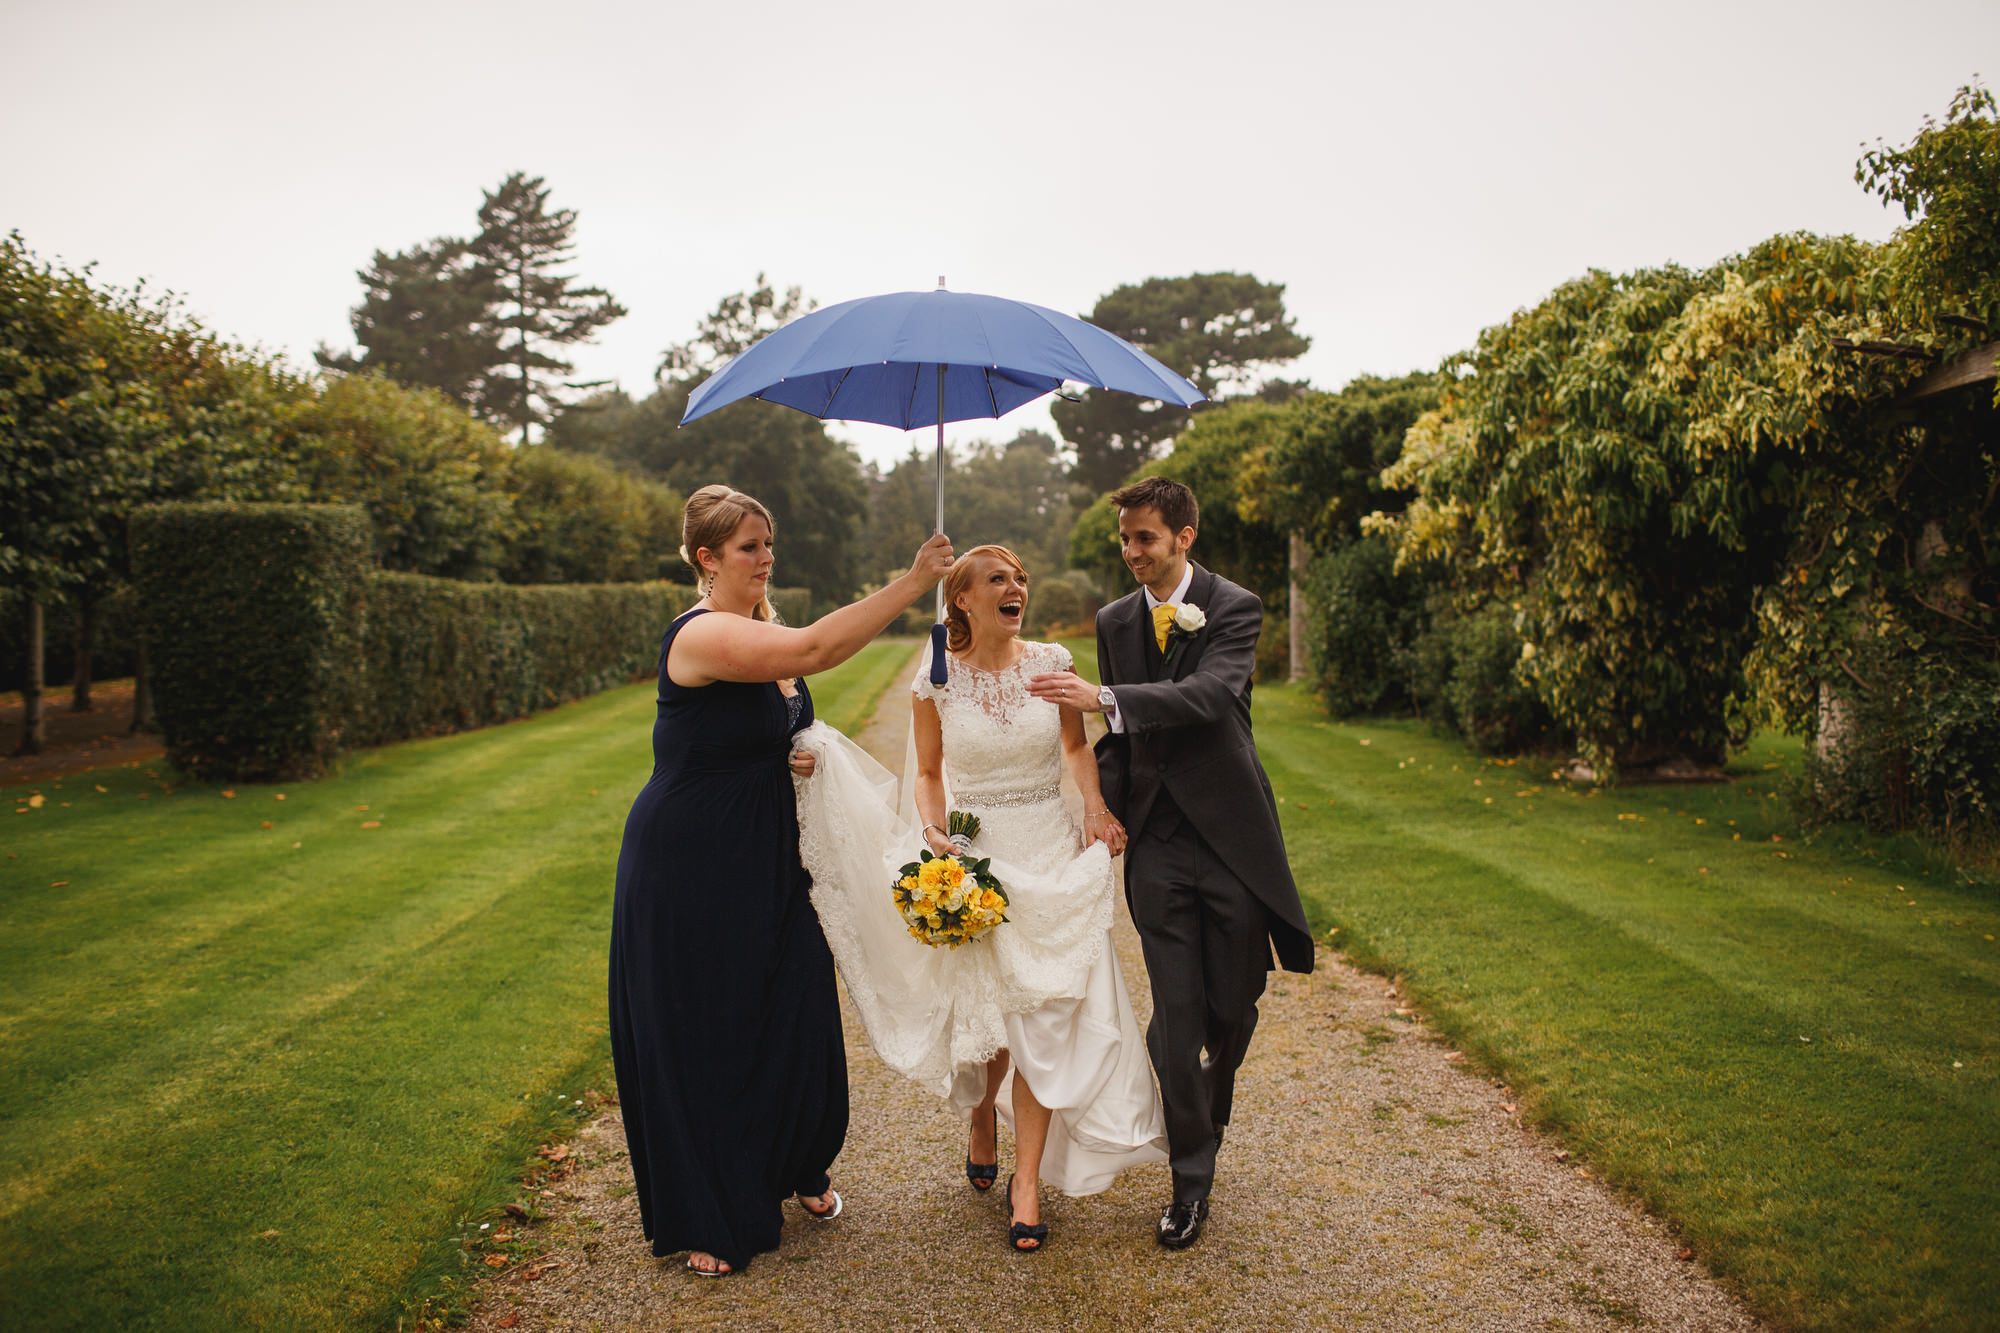 thornton-manor-wedding-photography-sarah-rich-35